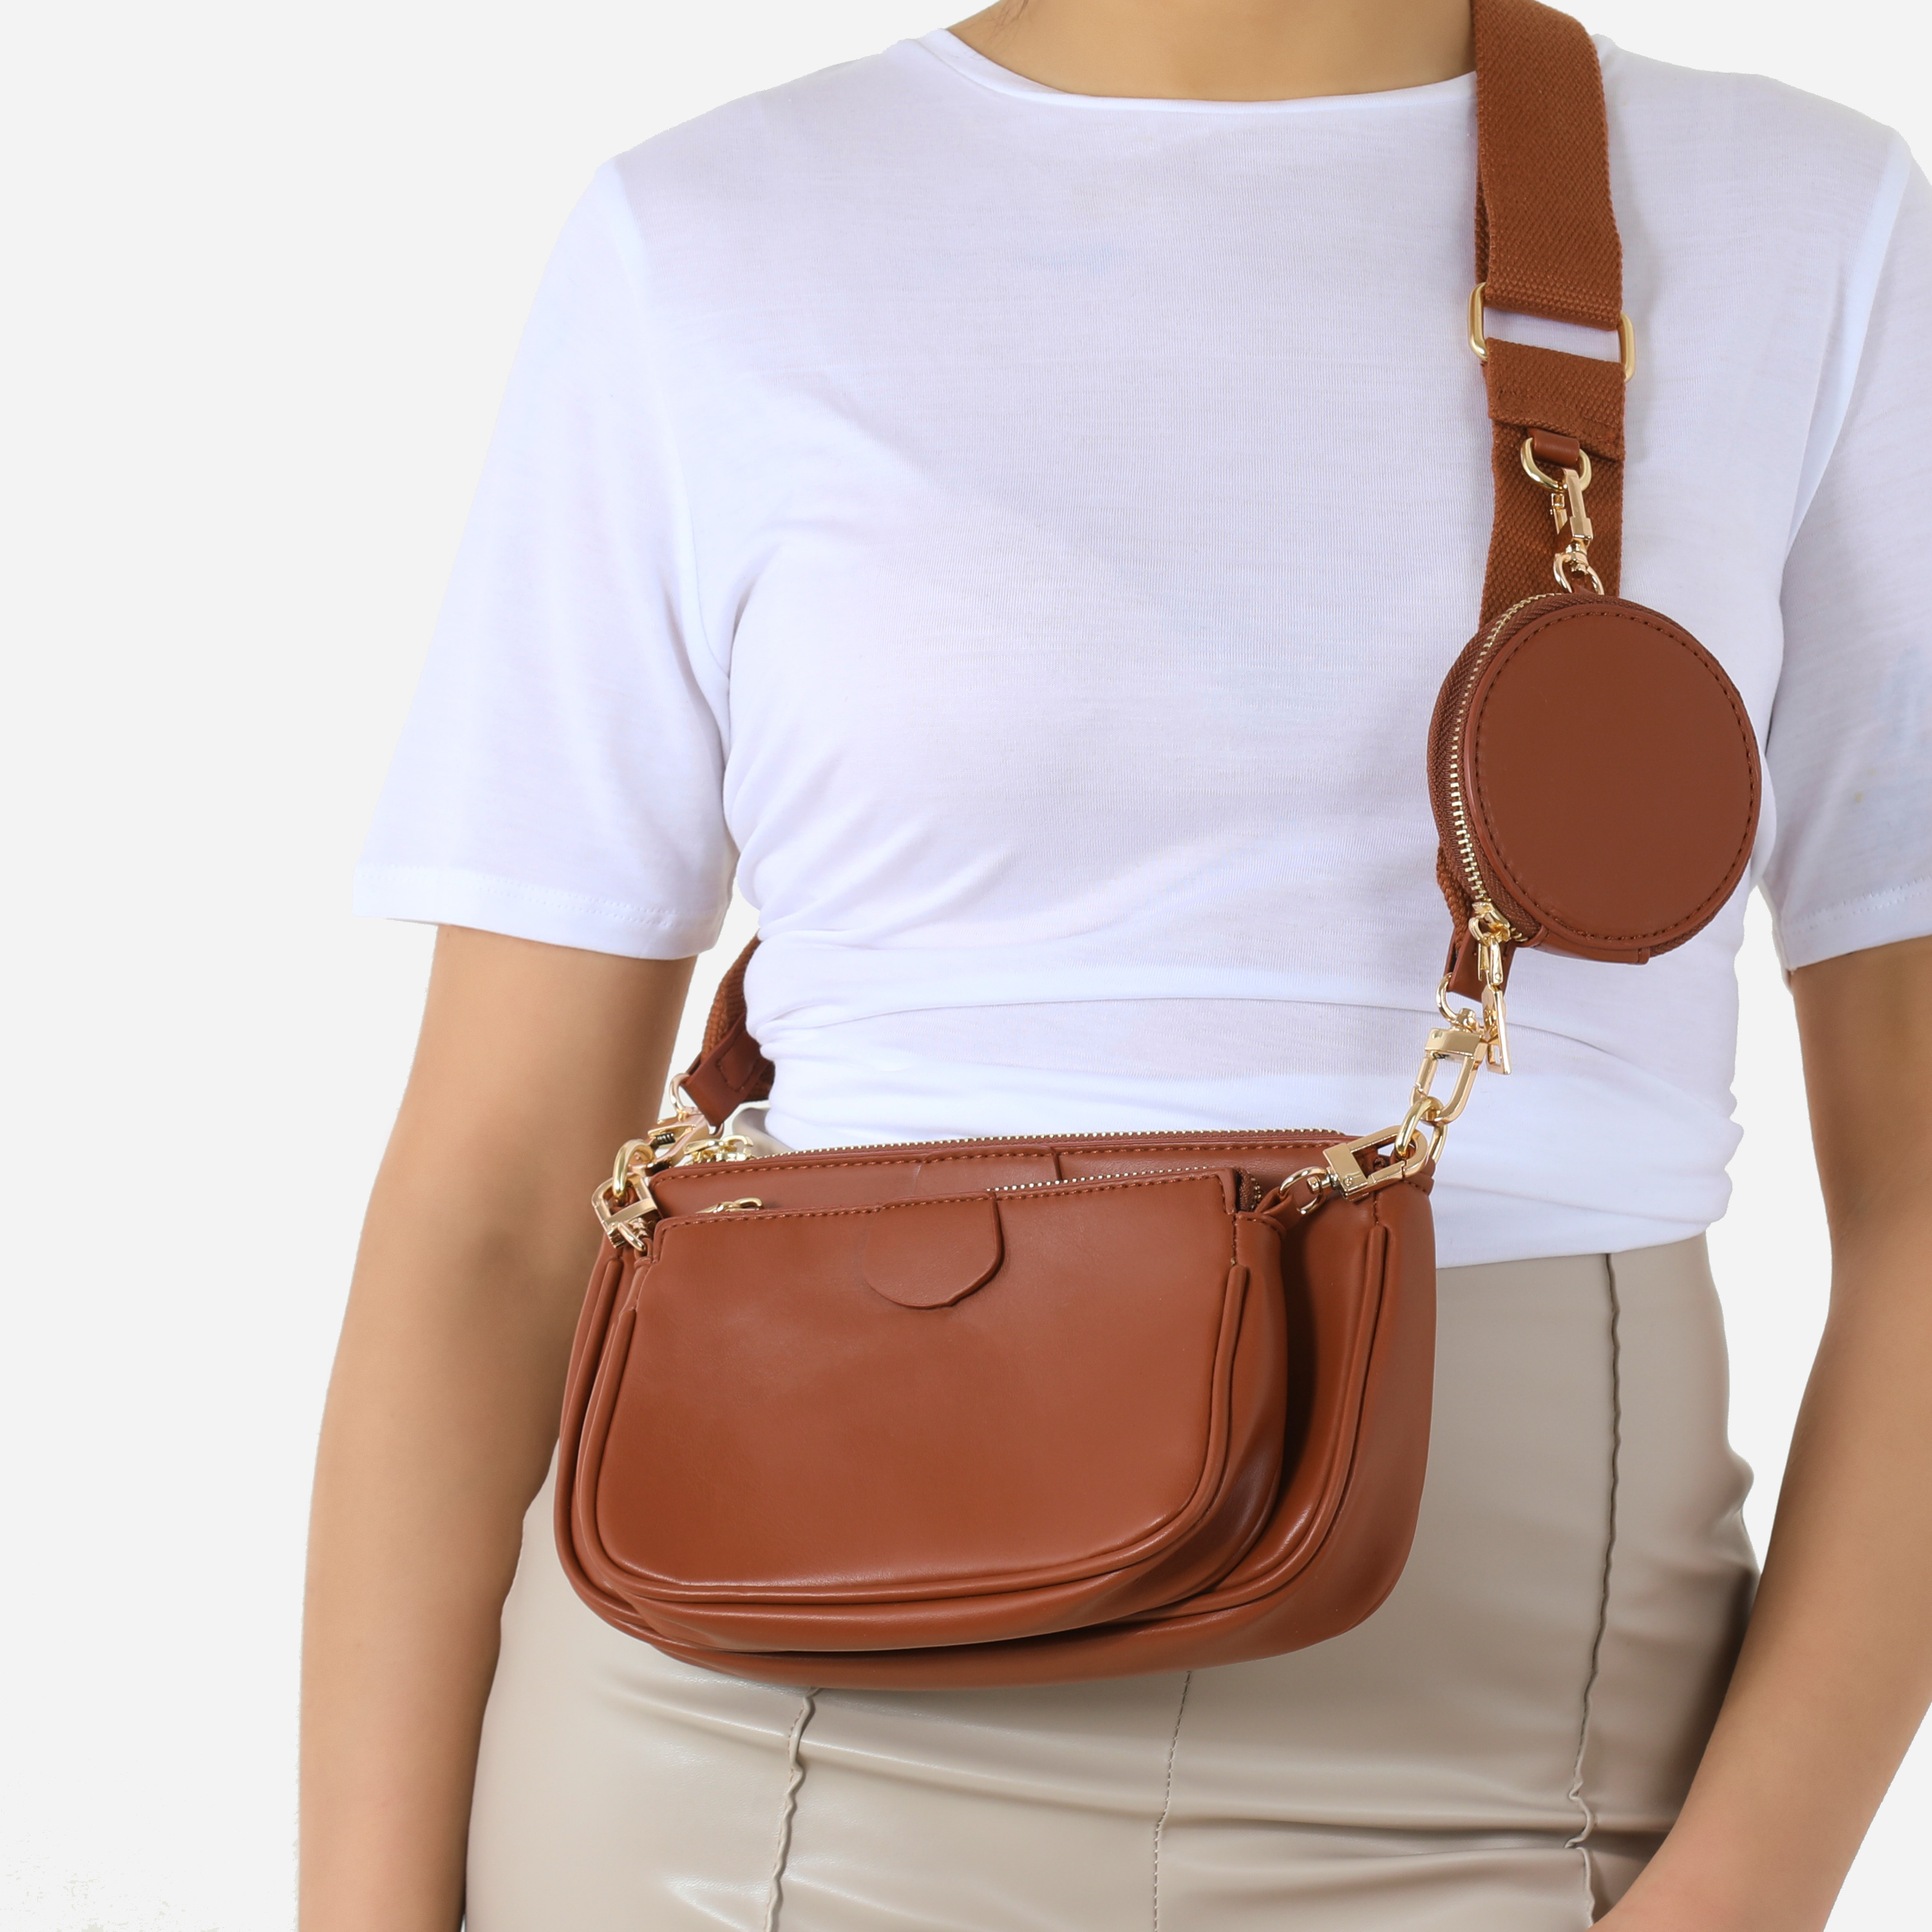 Chain & Purse Detail Cross Body Bag In Tan Faux Leather